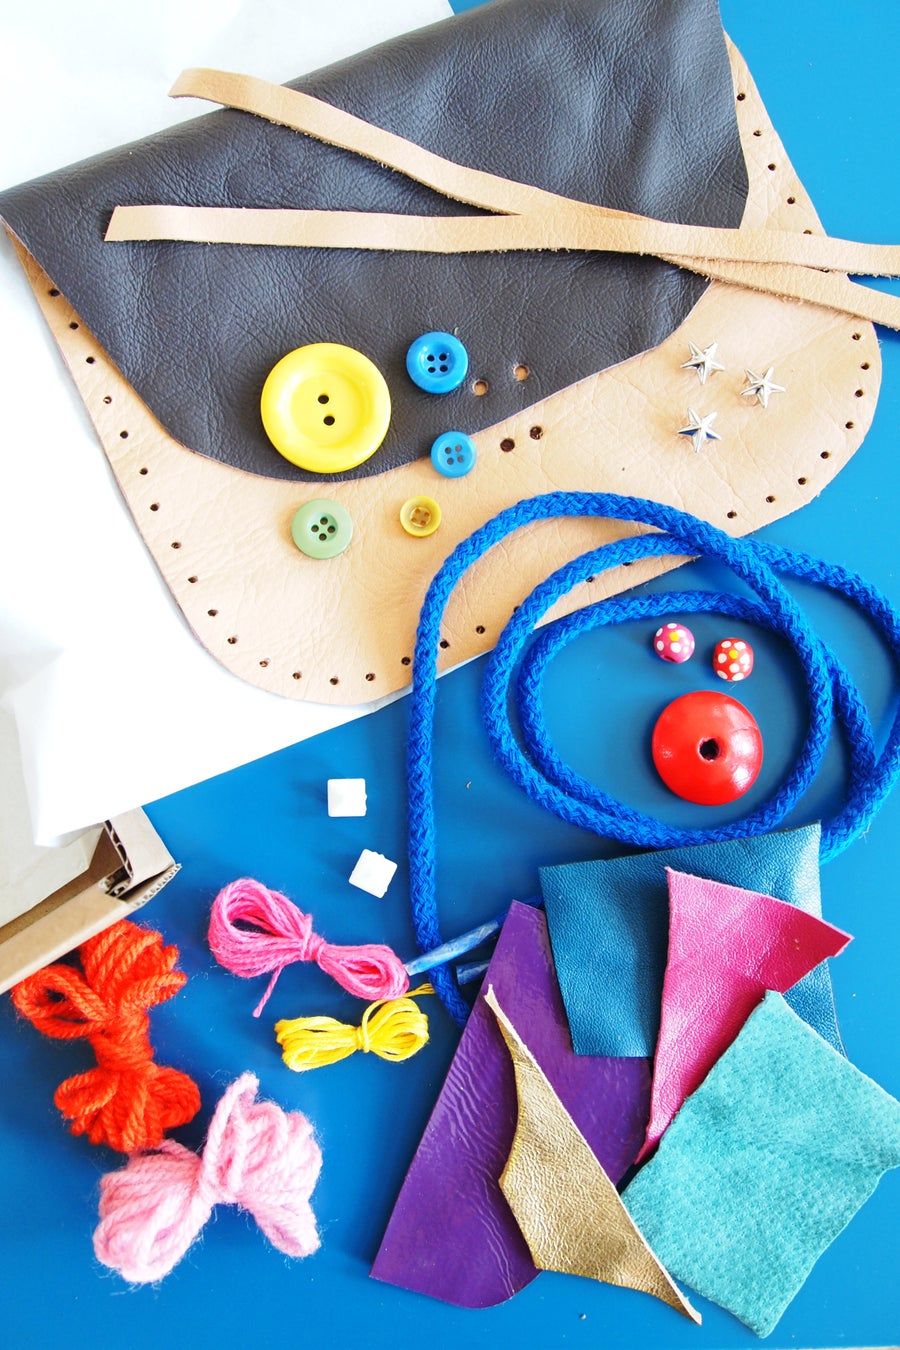 Image of Sew A Bag Kit